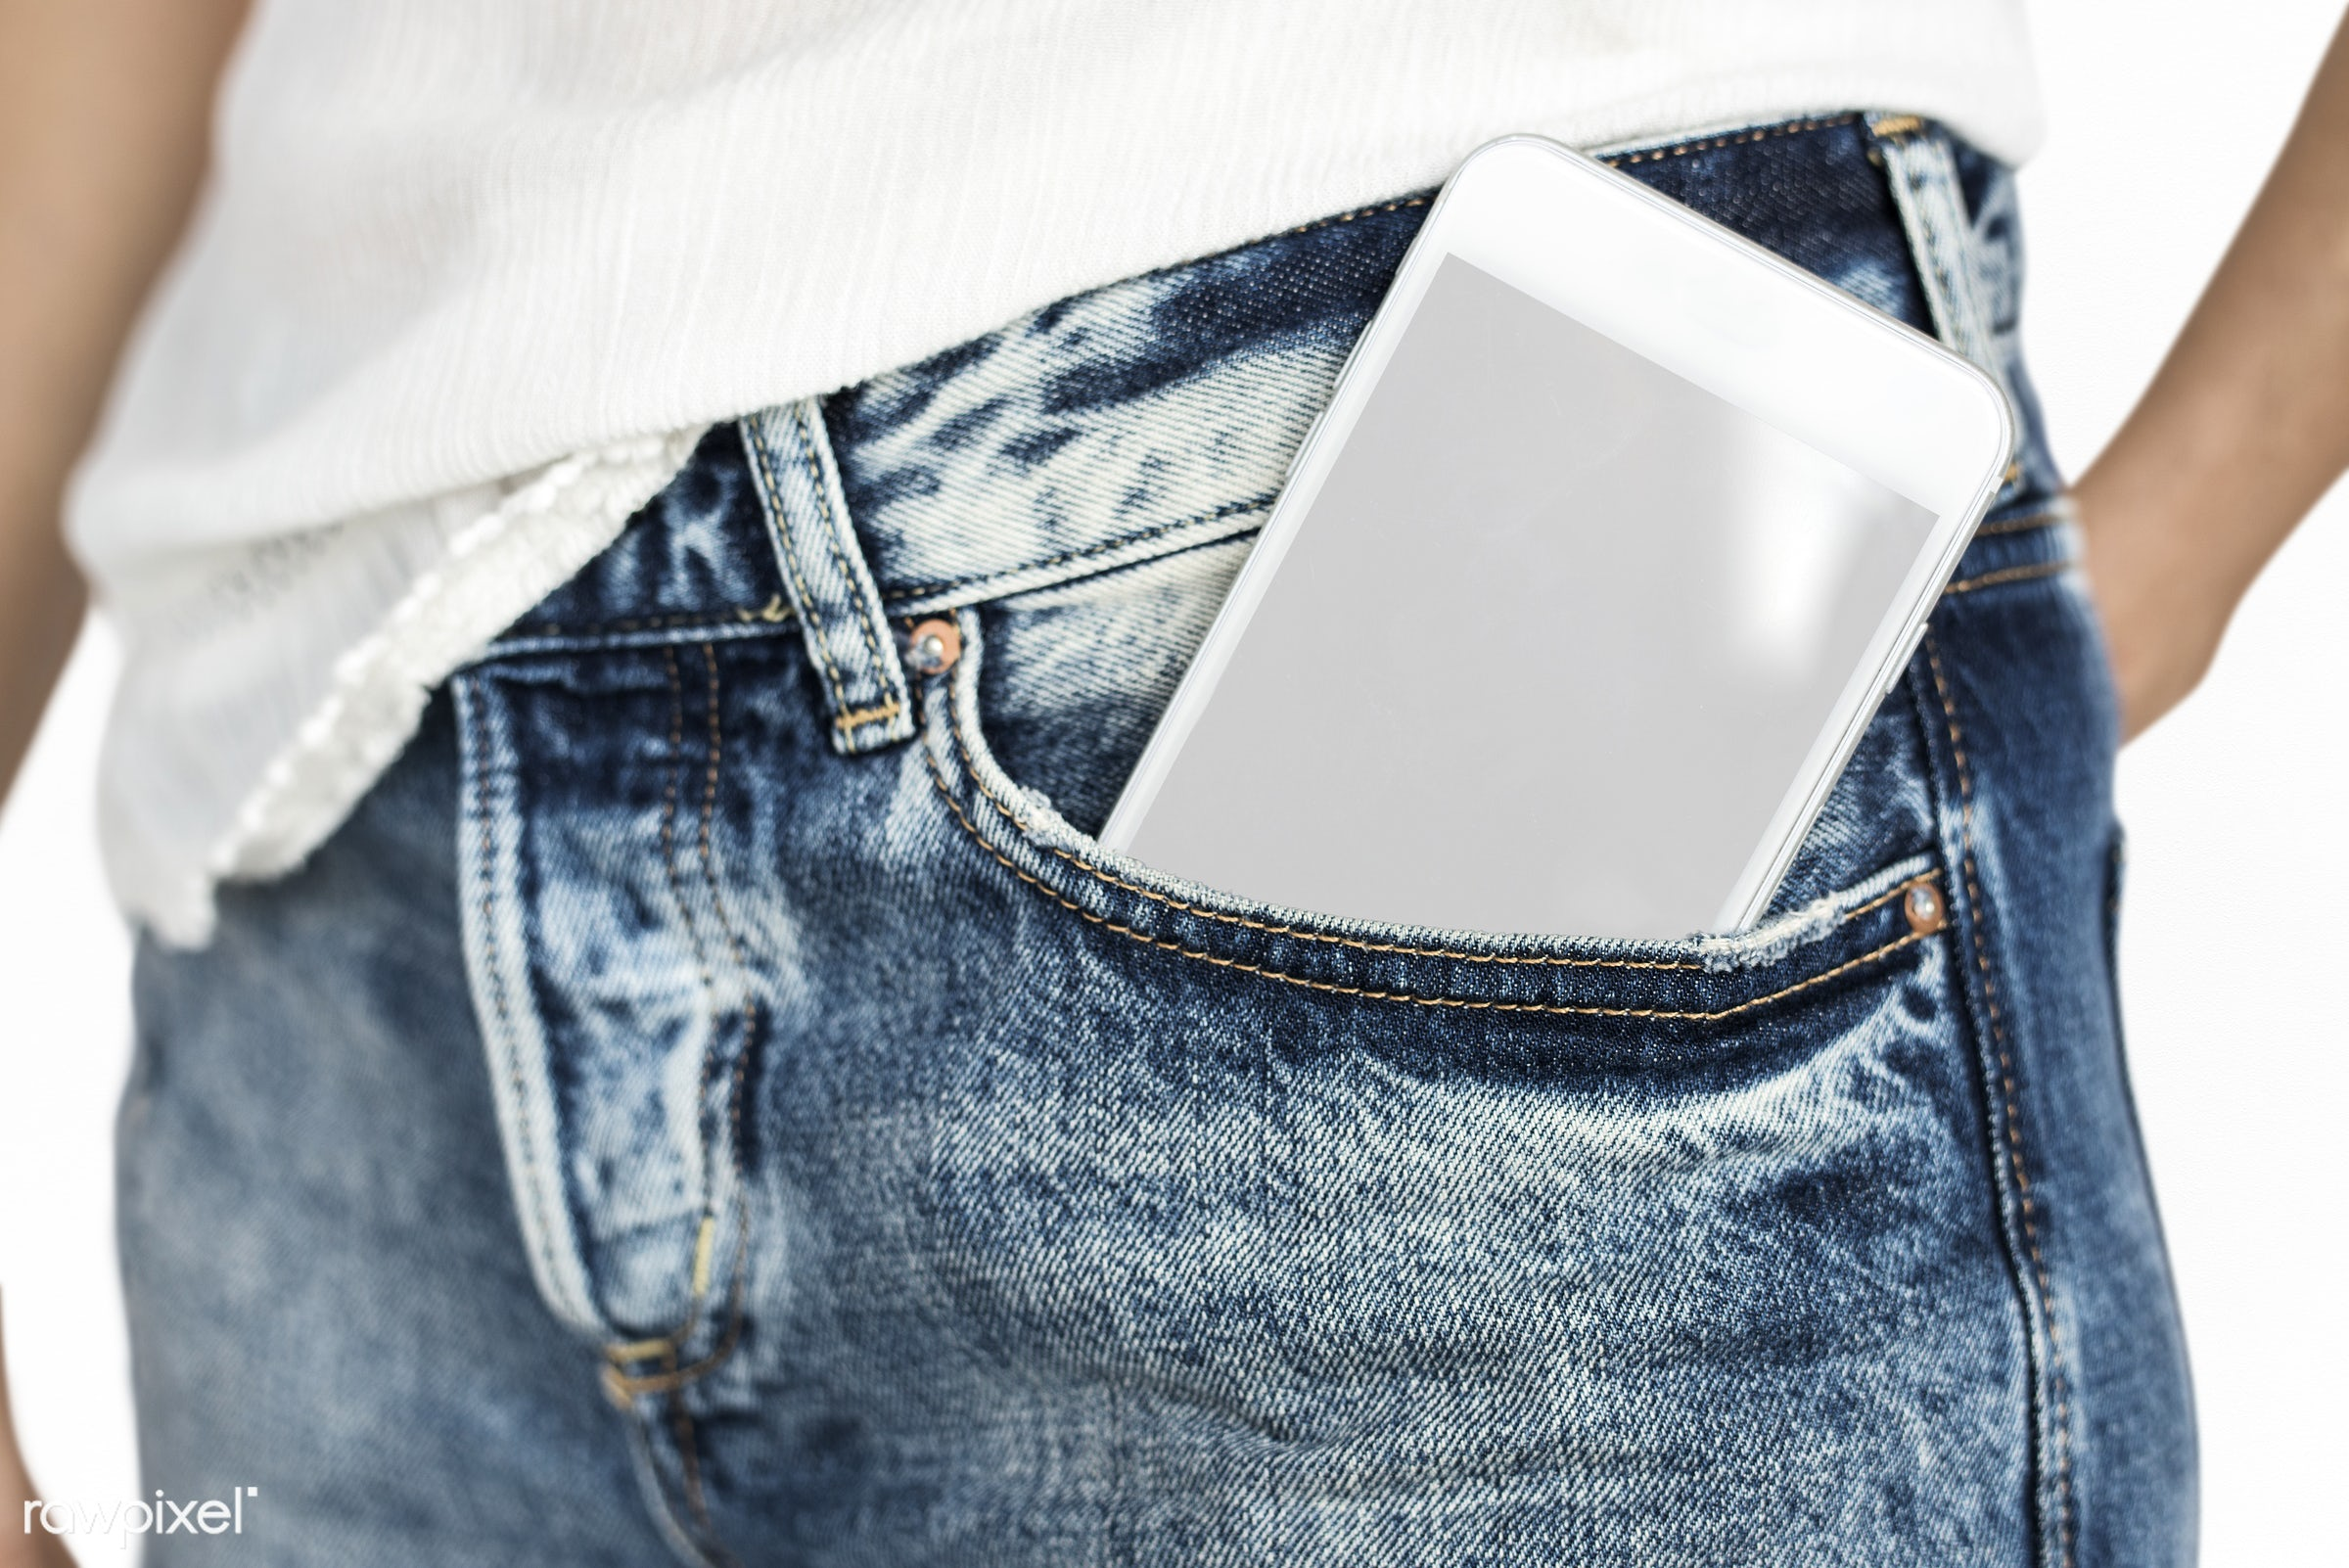 digital device, body, copy space, person, portable, technology, isolated on white, pants, hip, device screen, equipment,...